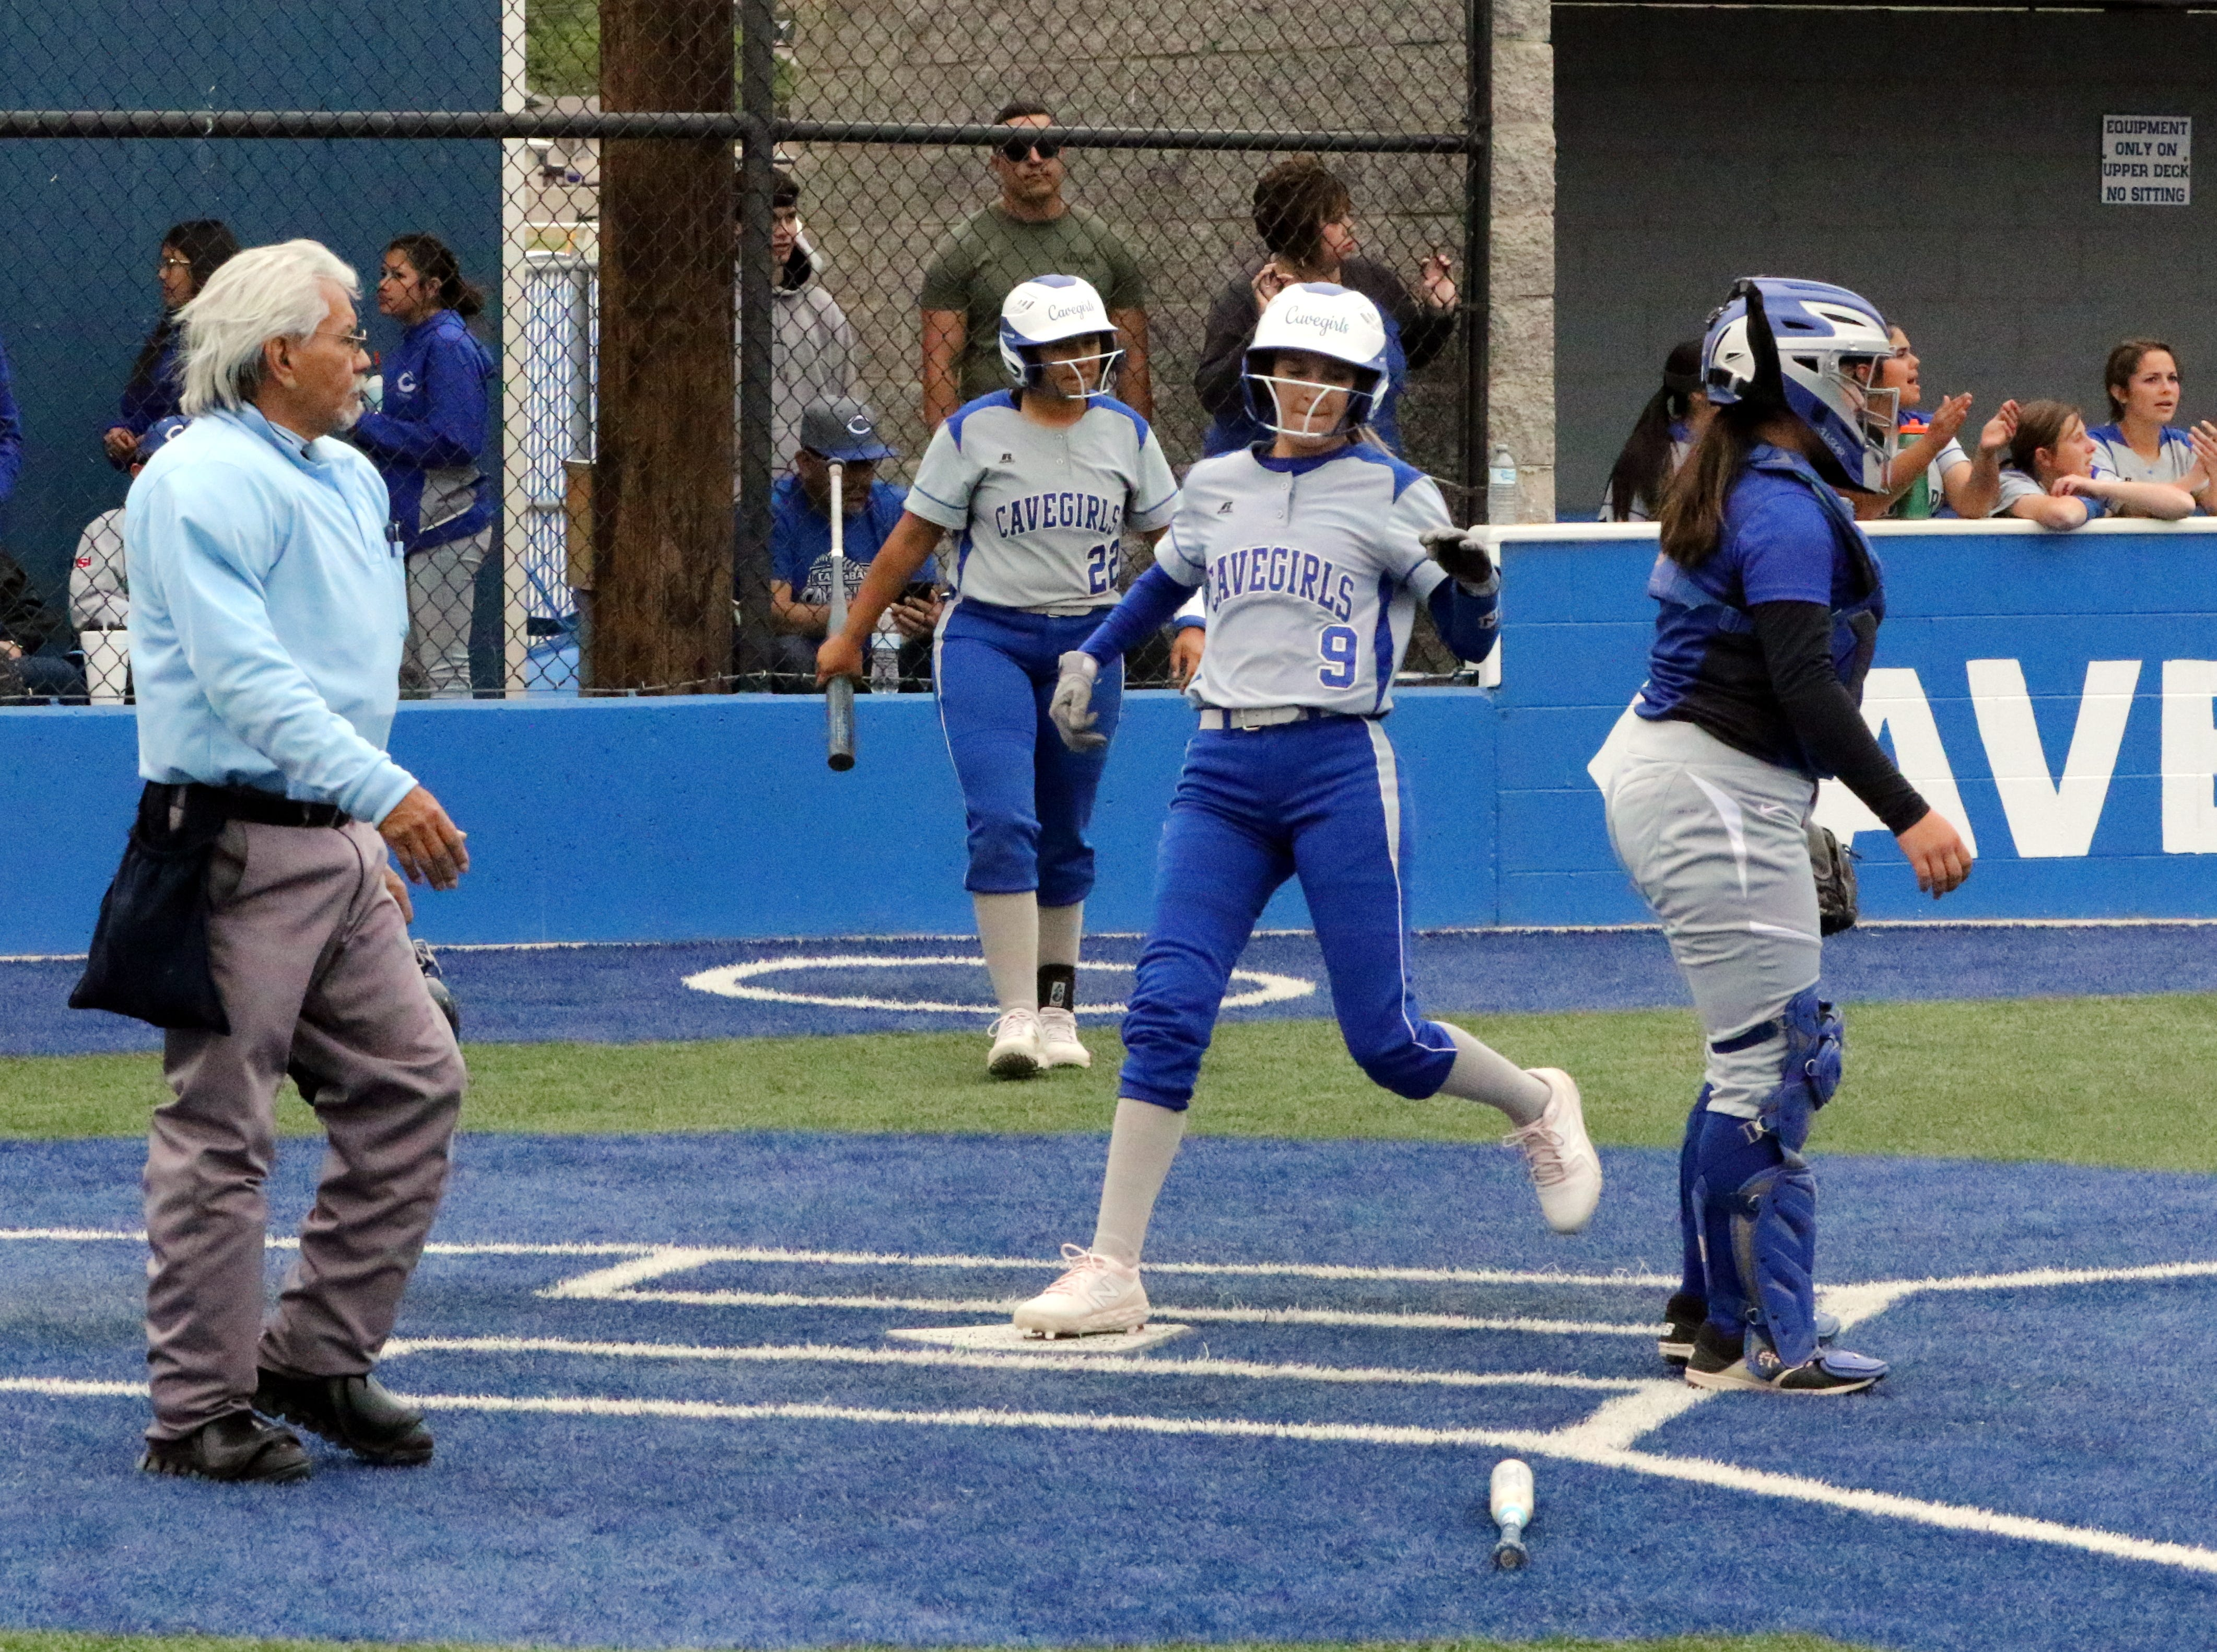 Jennifer Munro crossed home plate to score one of Carlsbad's six runs in the fifth inning of Game 1 against Lovington.